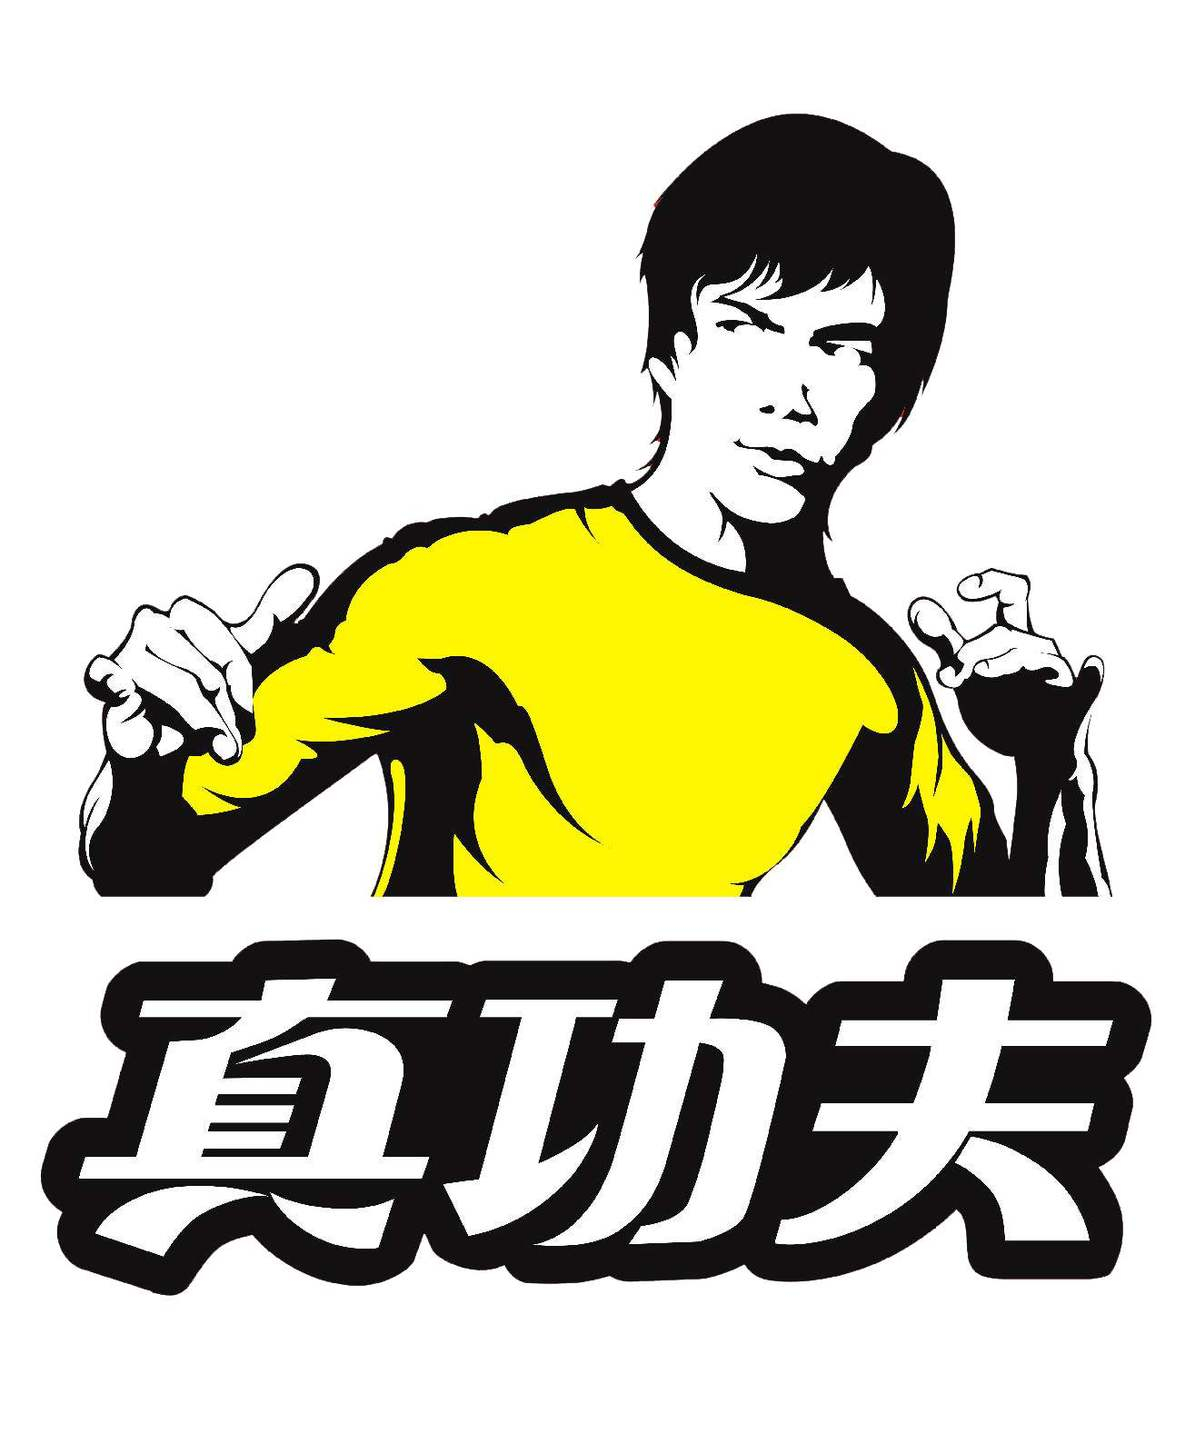 Bruce Lee's daughter sues Chinese restaurant over logo use